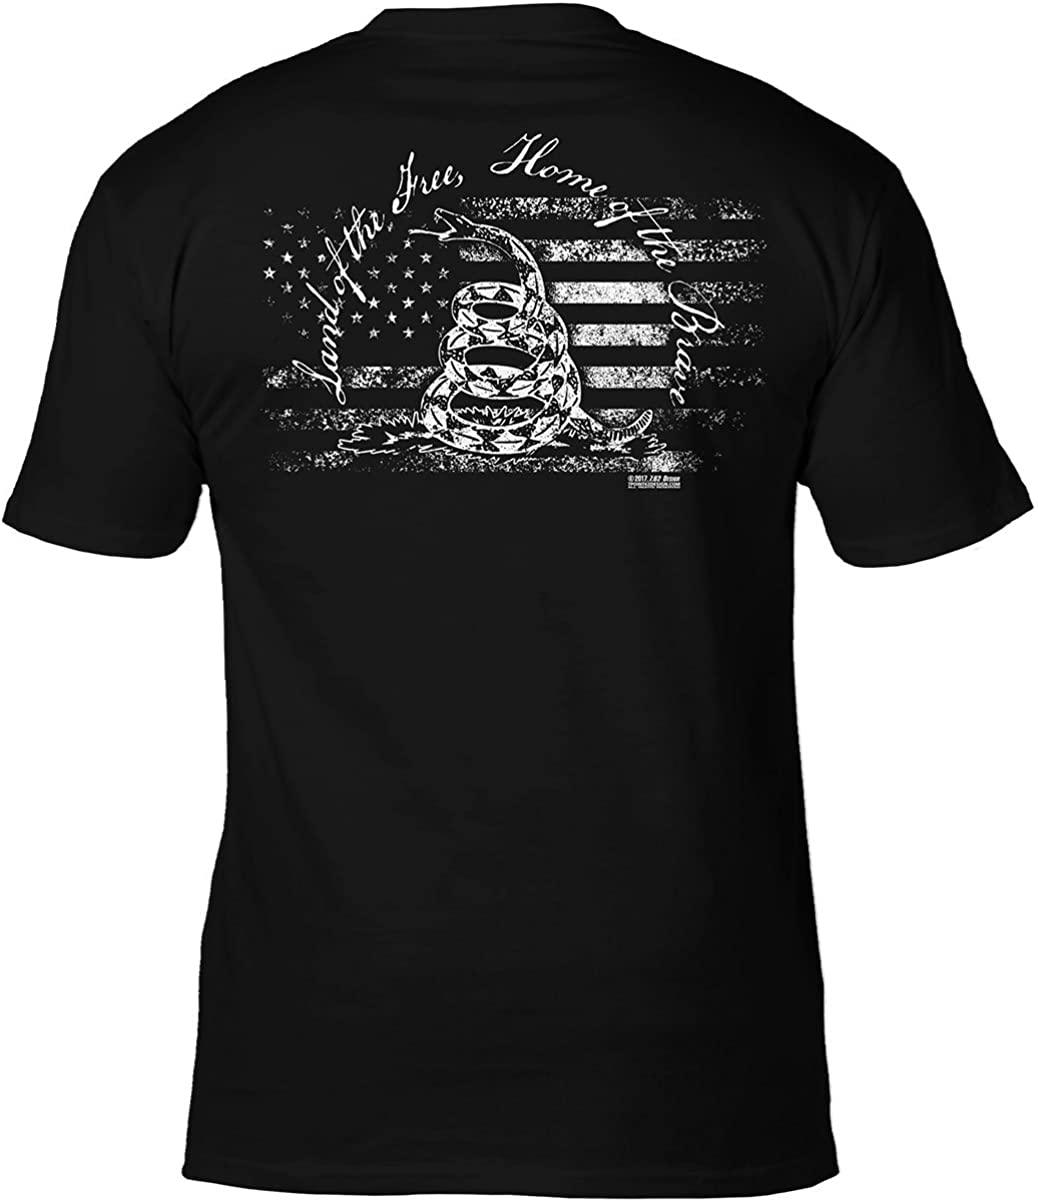 7.62 Design 'Land of The Free Home of The Brave' Patriotic Men's T Shirt